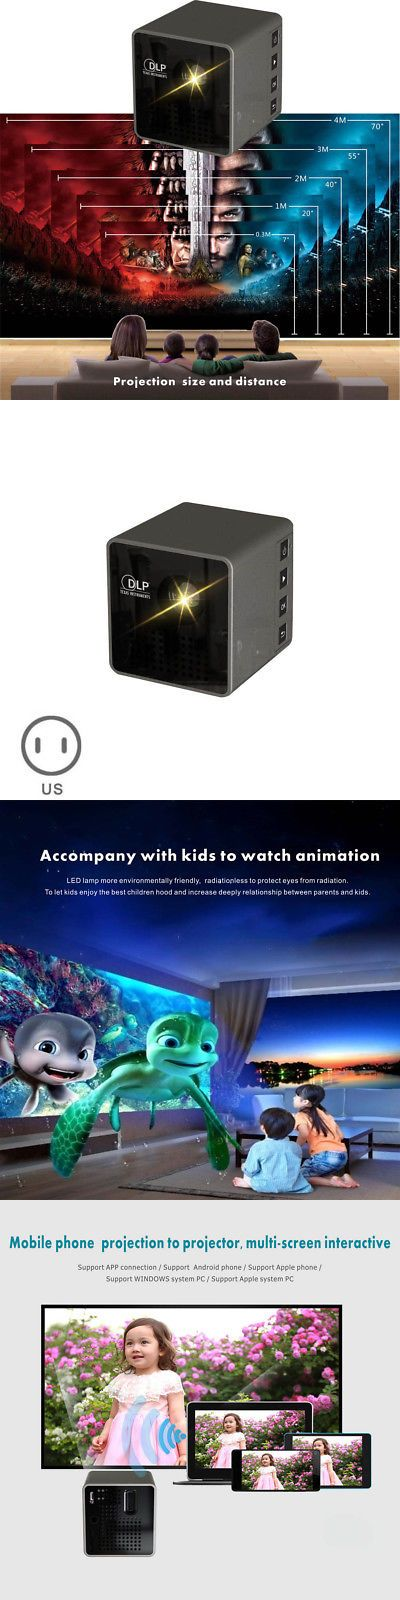 Home Theater Projectors: 1080P Mini Led Portable Wireless Pocket Wifi Dlp Multimedia Video Projector Home -> BUY IT NOW ONLY: $89.99 on eBay!